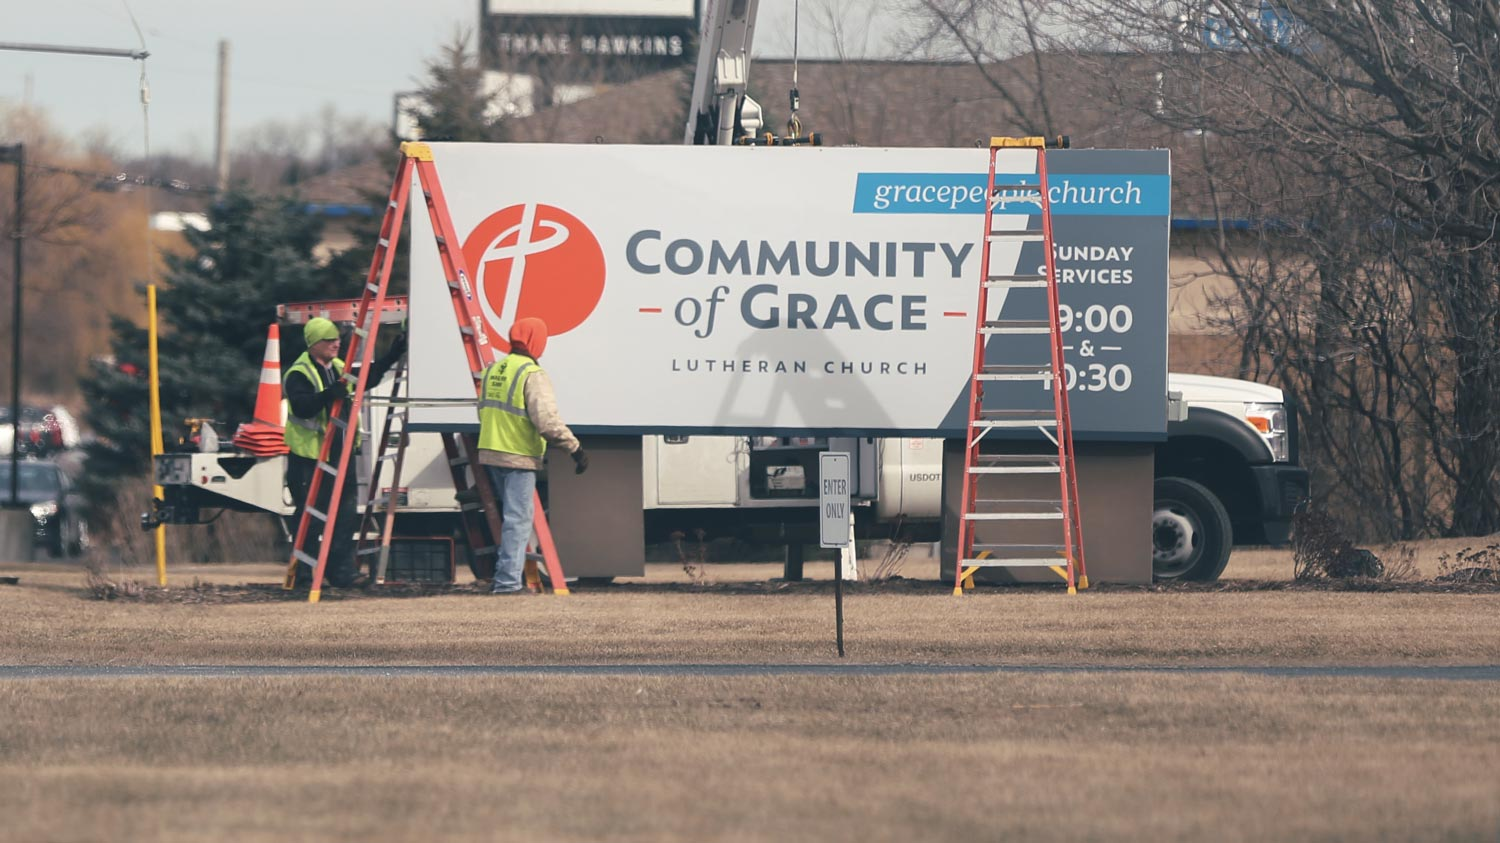 Sign installation at Community of Grace